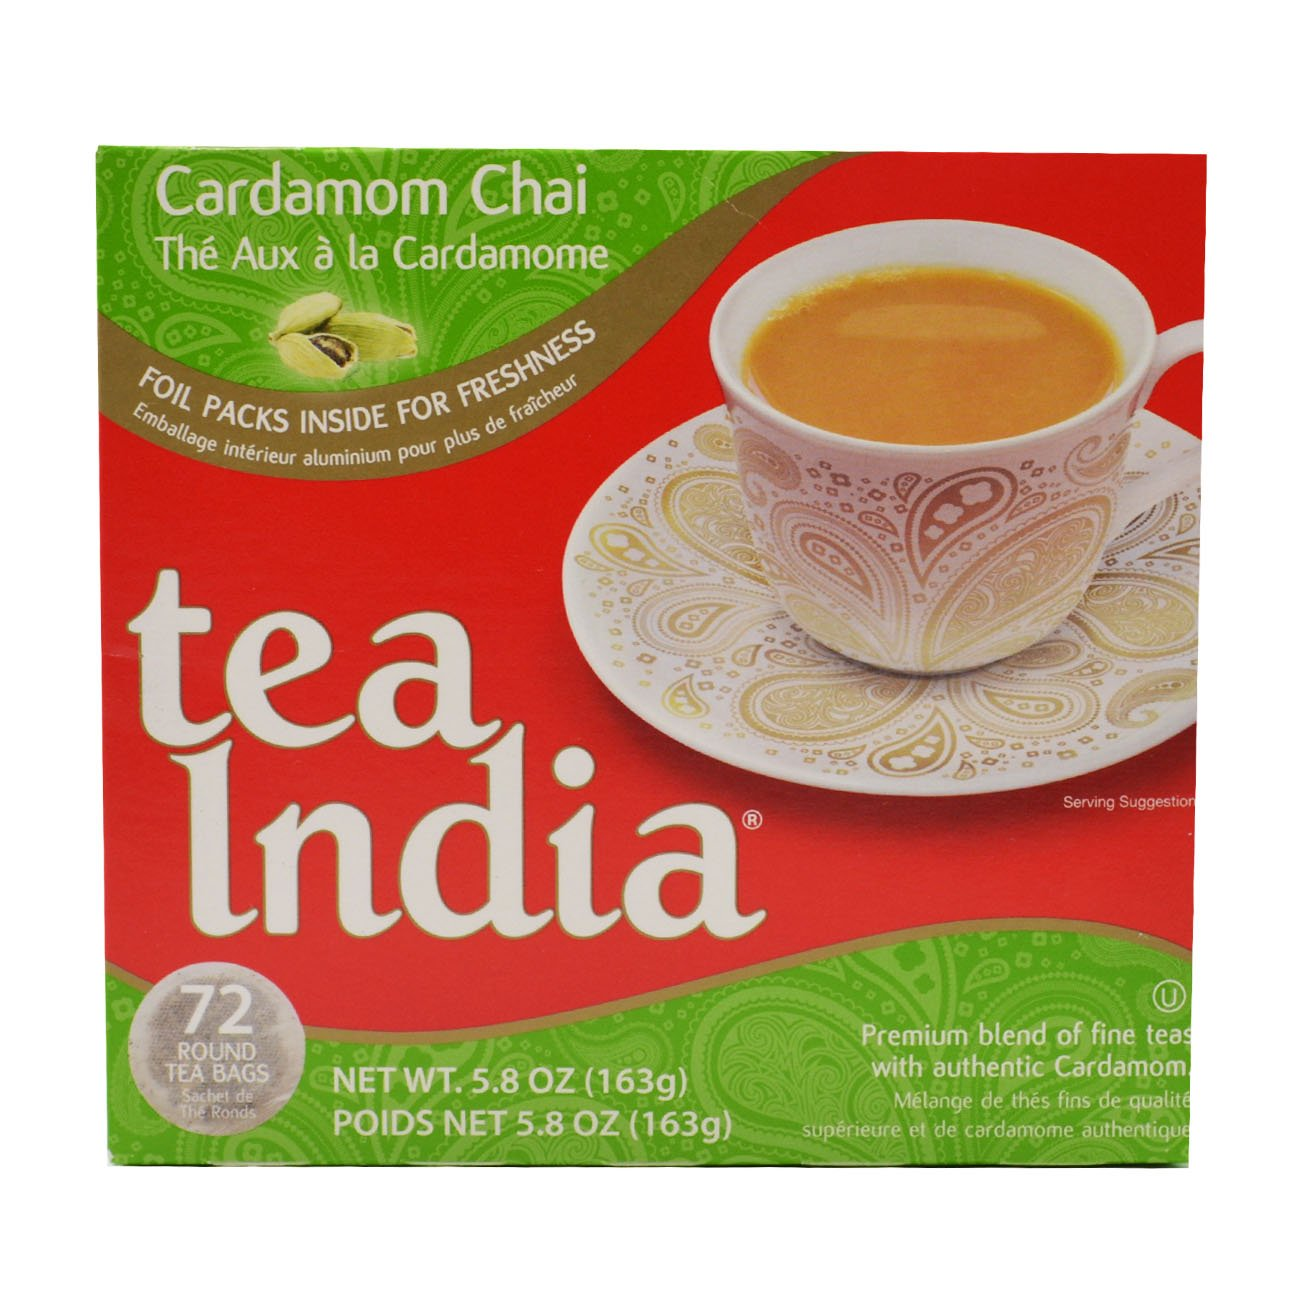 Tea India Round Tea Bags, Cardamom Chai, 72 Count